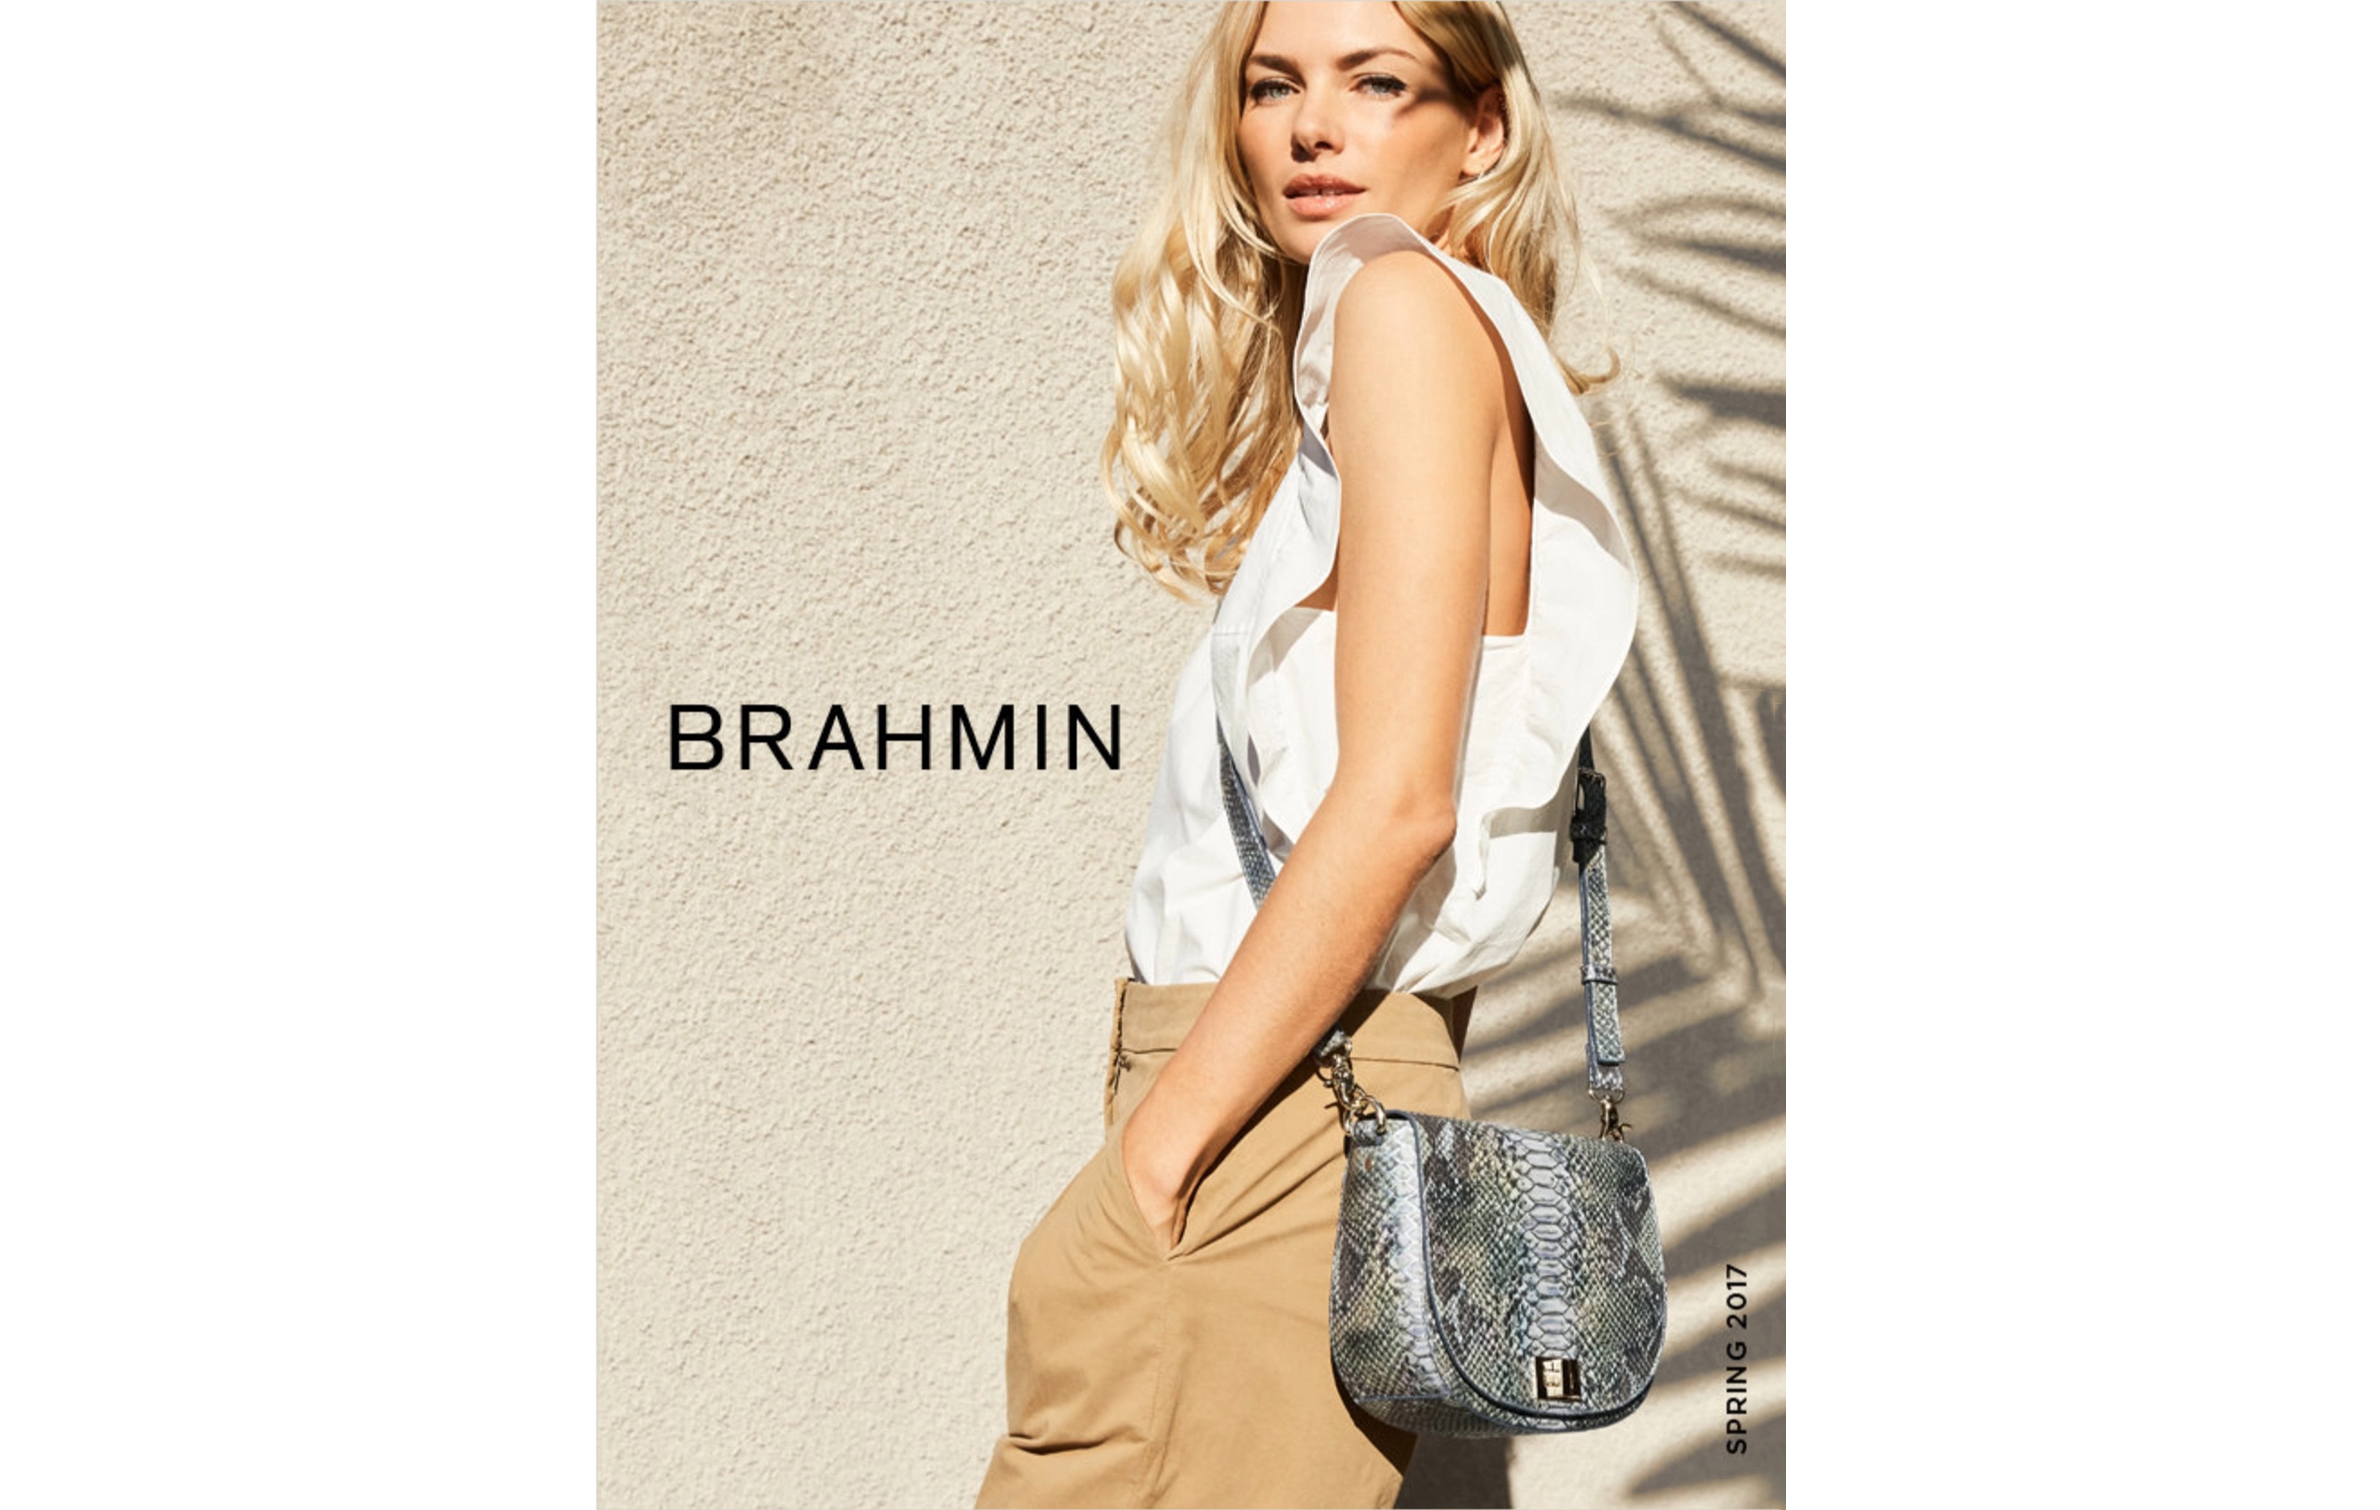 Brahmin_Summer Catalog_Video_1.jpg